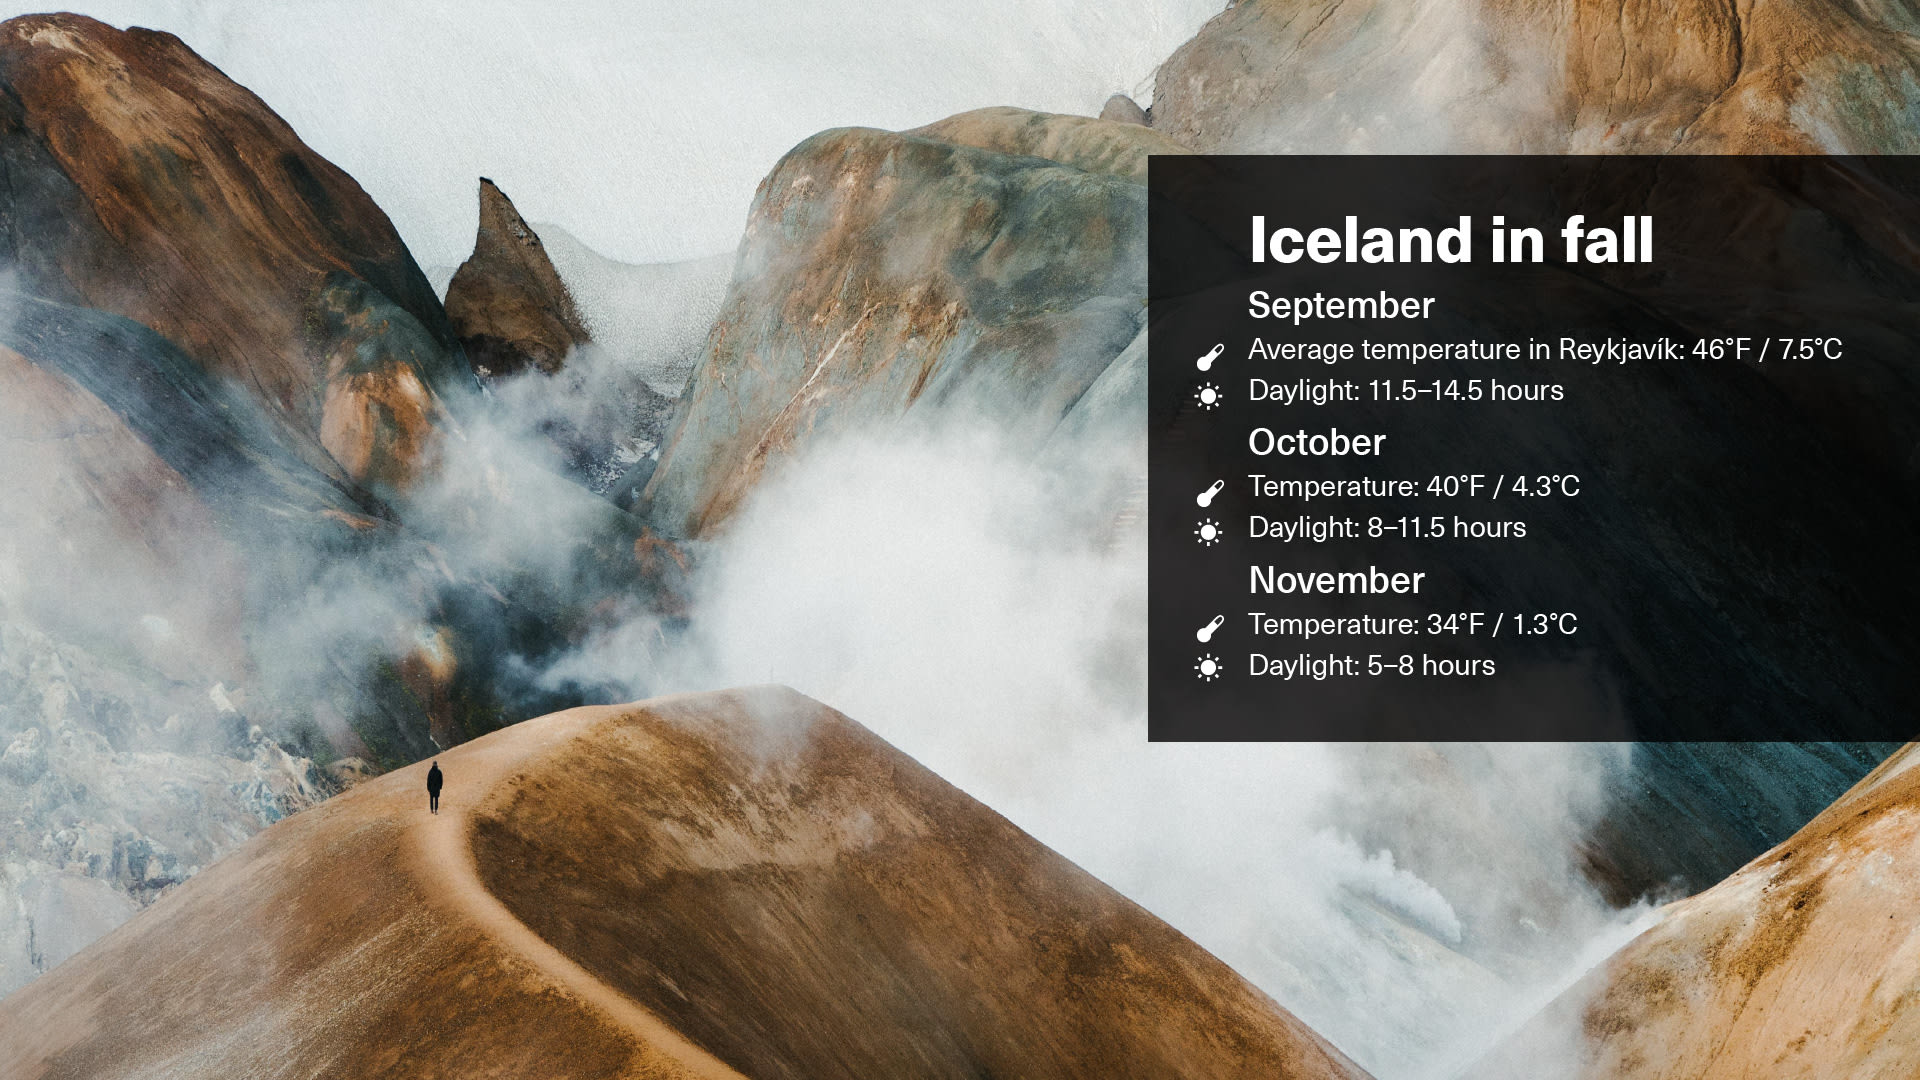 Autumn weather displayed via an illustrative graphic with Highlands landscape pictured in the background and text overleaf that displays the weather and daylight hours in September, October and November in Iceland